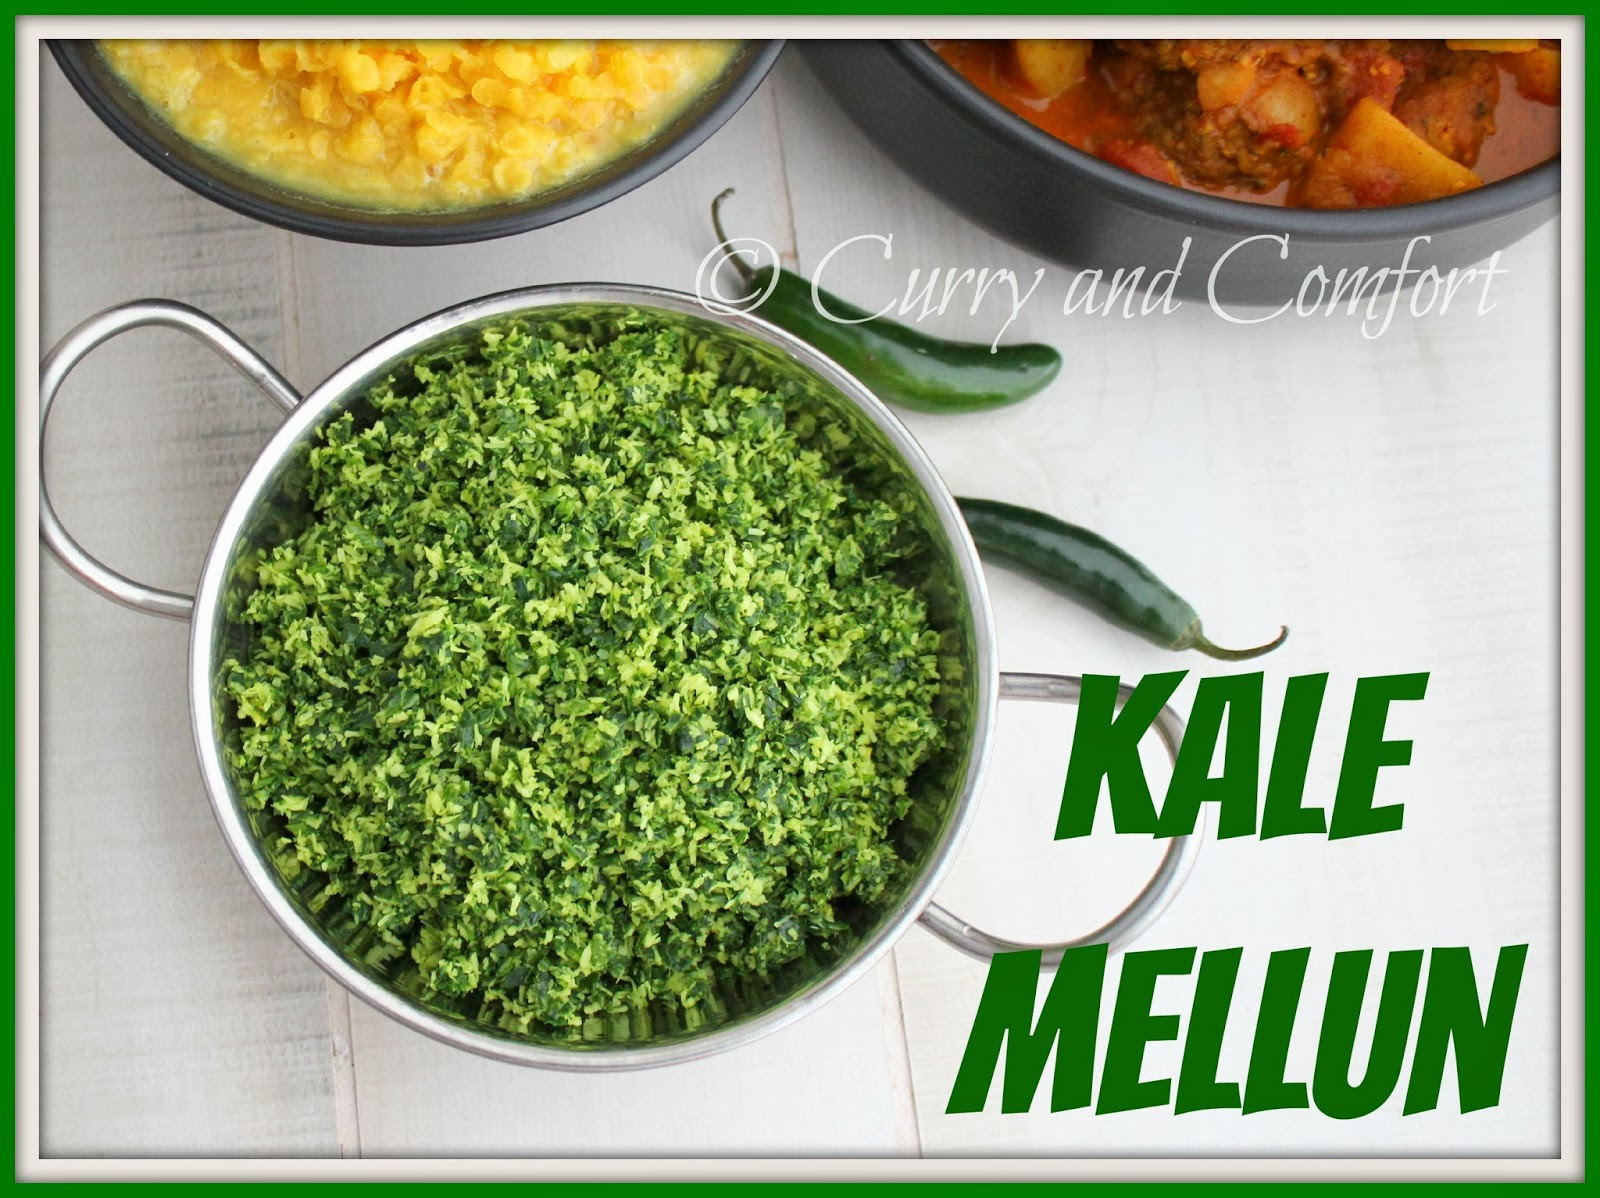 Kitchen simmer sri lankan kale mellun vegan welcome to day 4 of kale week now this kale dish is truly a powerhouse in sri lanka we eat is as one of many dishes served in a rice and curry forumfinder Choice Image